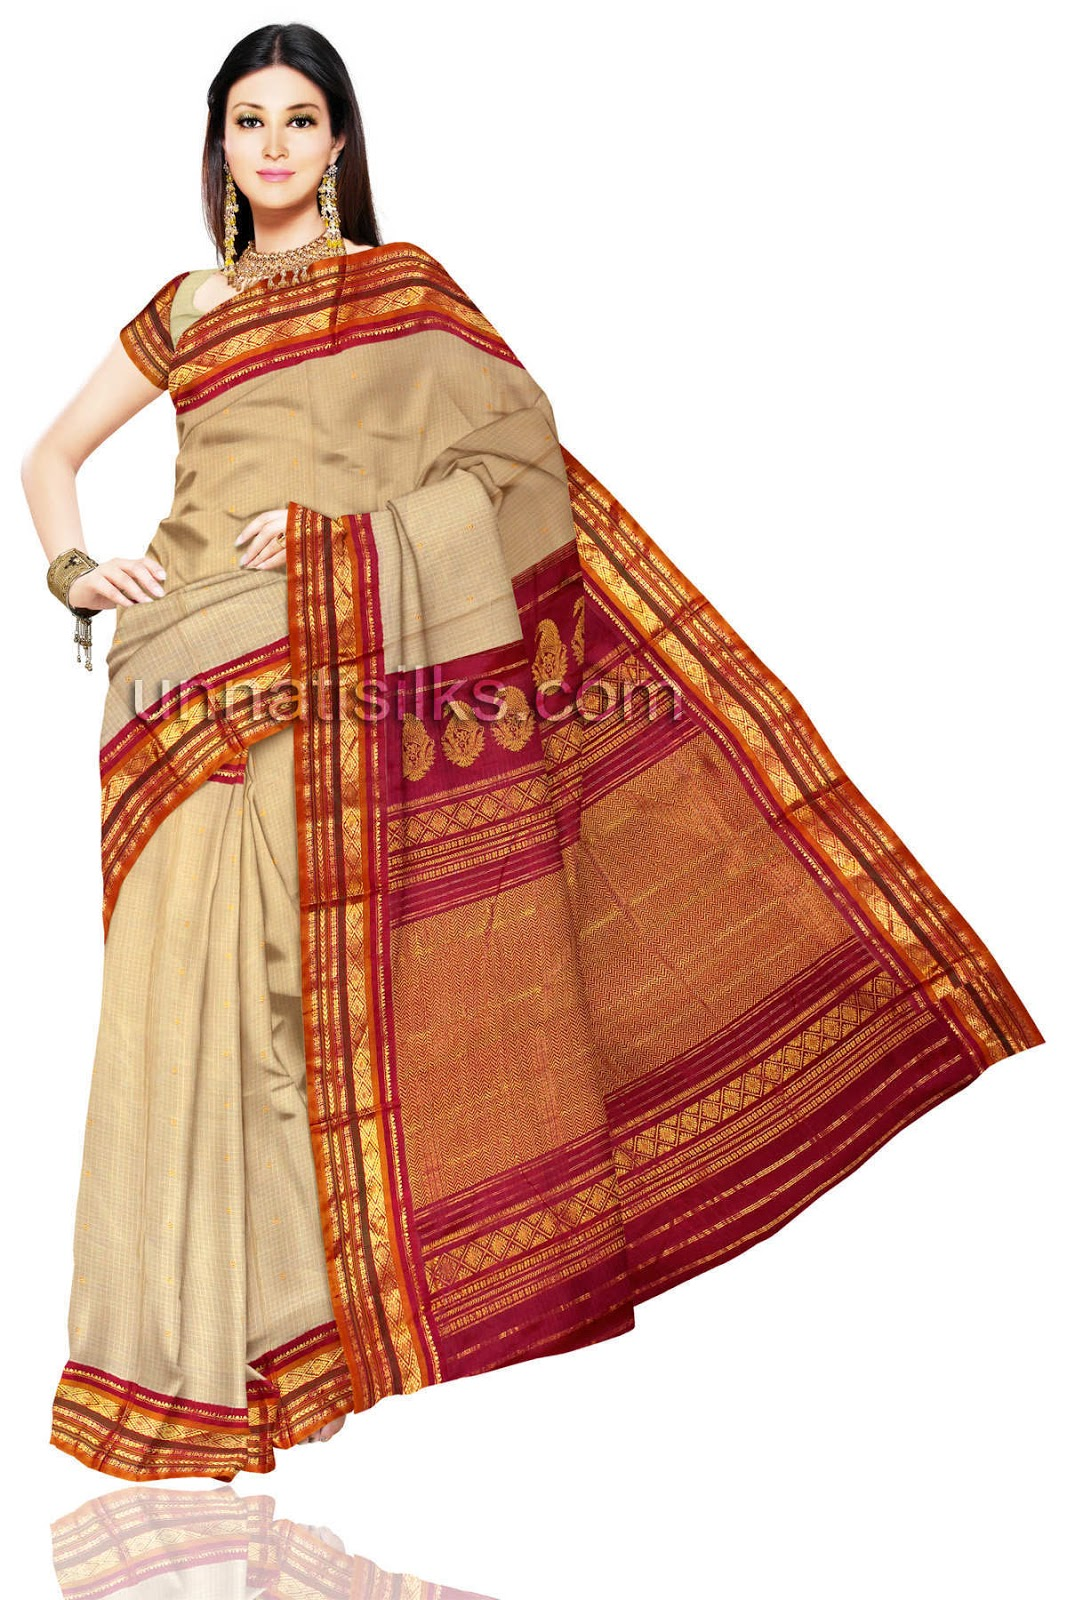 South indian wedding sarees online shopping